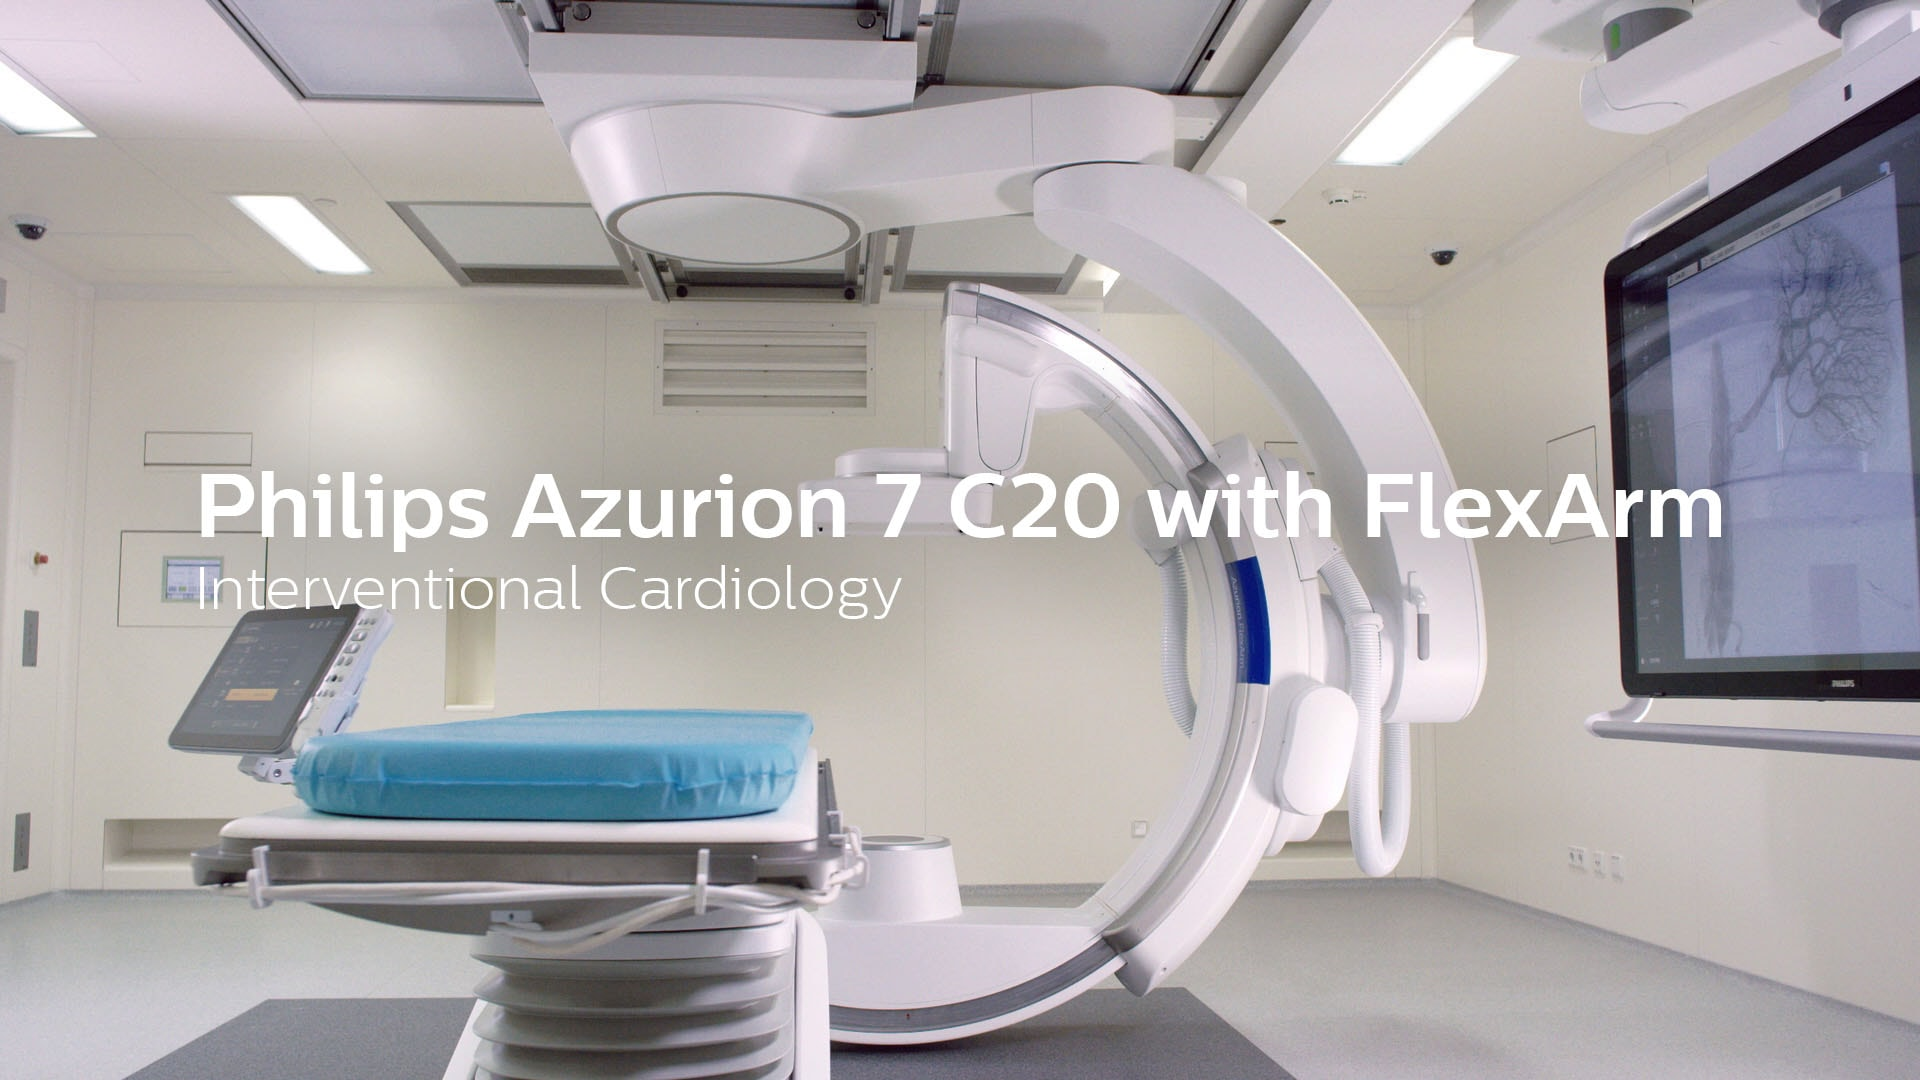 Philips Azurion 7 C20 with Flexarm interventional cardiology